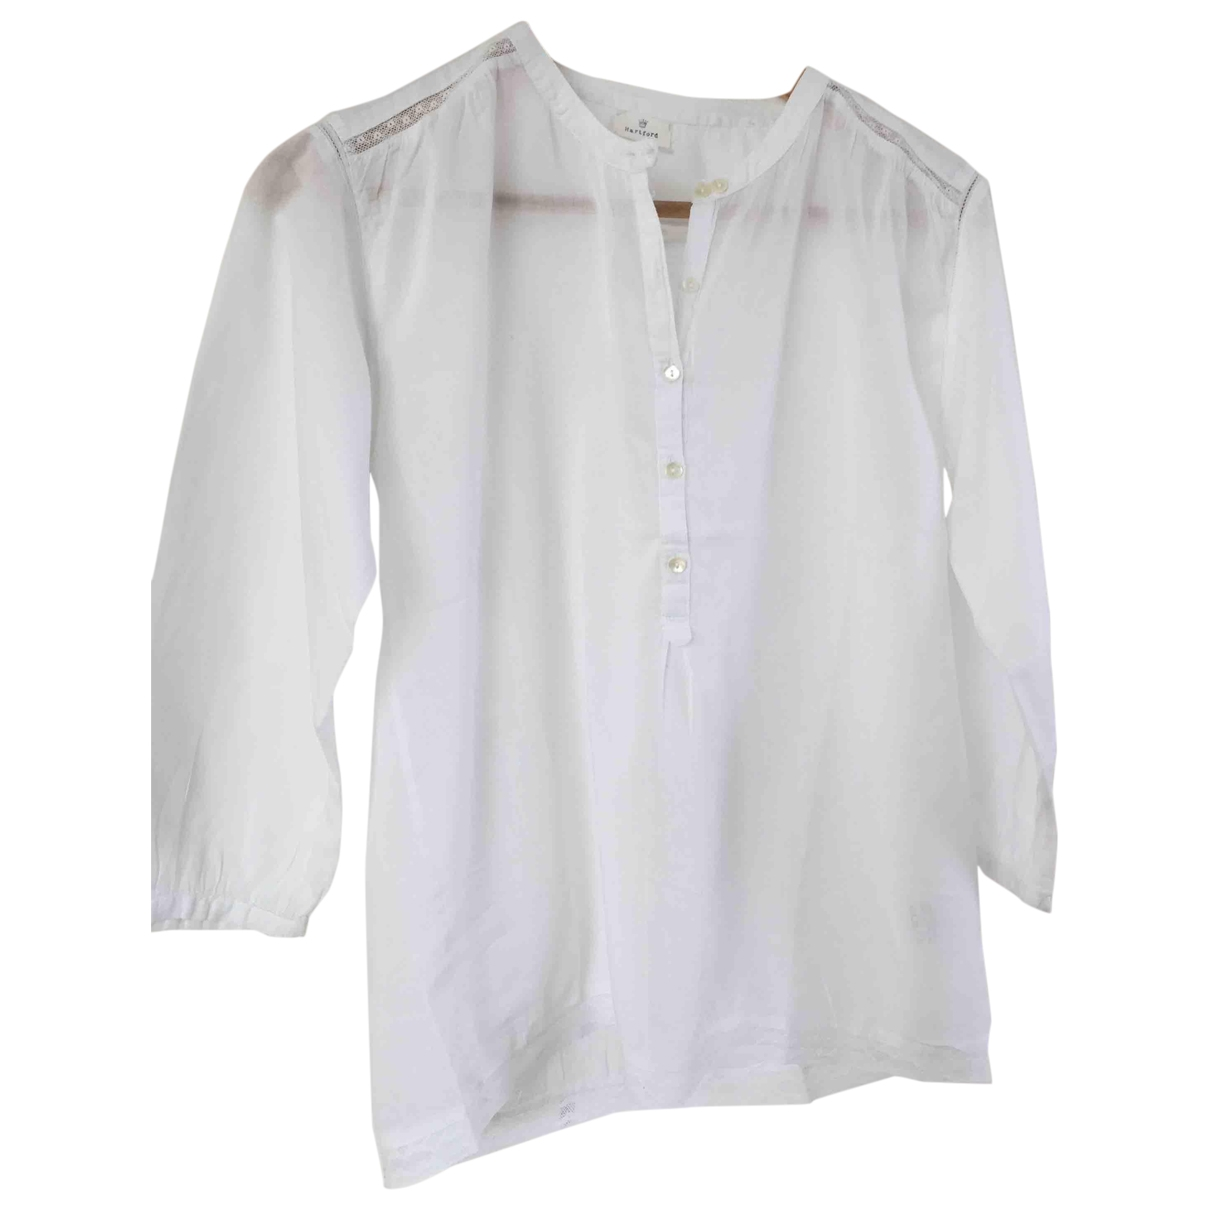 Hartford \N White Cotton  top for Women 1 0-5